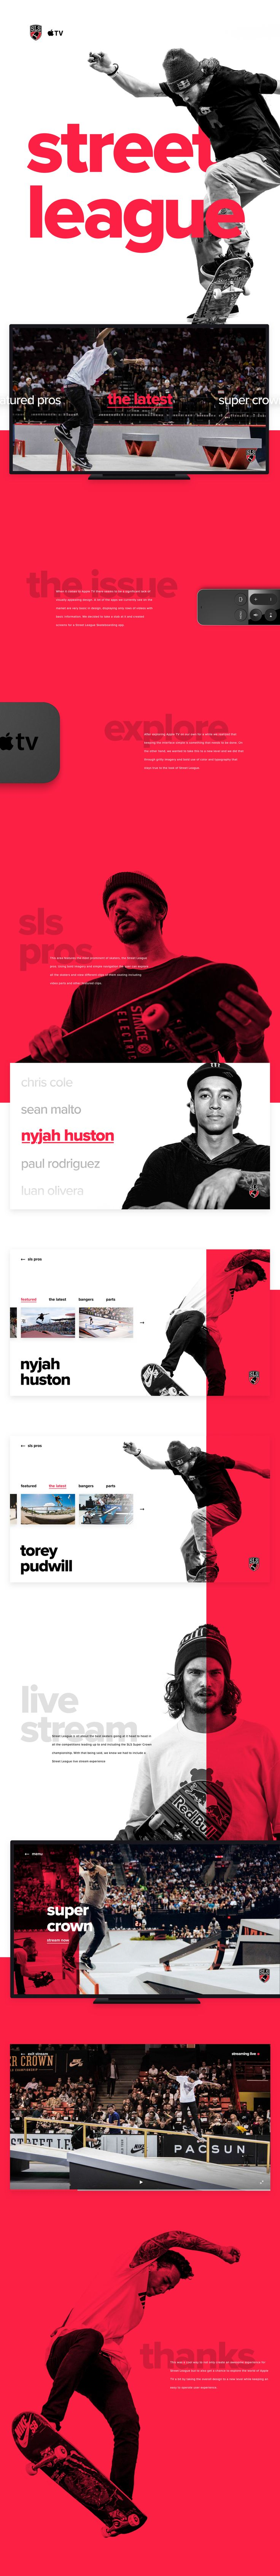 This was a cool way to not only create an awesome experience for Street League but to also get a chance to explore the world of Apple TV a bit by taking the overall design to a new level while keeping an easy to operate user experience.